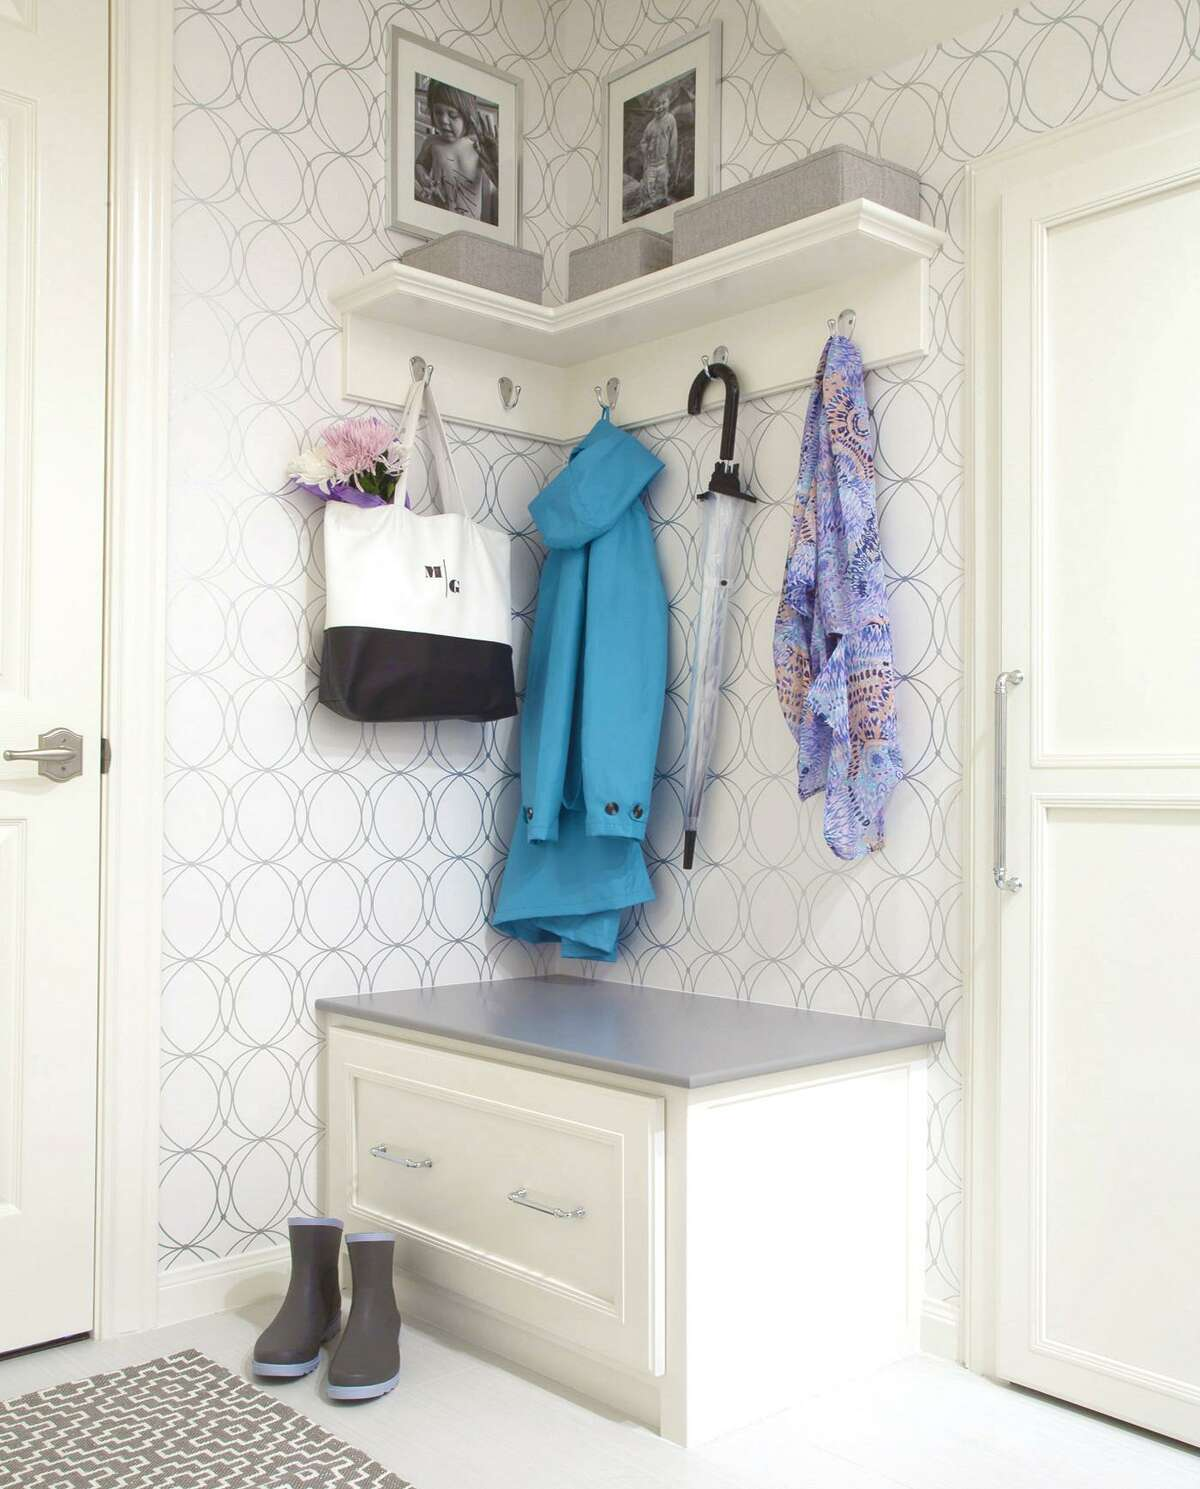 Karen Davis's new mud room has a storage bench where her kids can sit to put shoes on and hooks for hanging jackets, bags and backpacks.